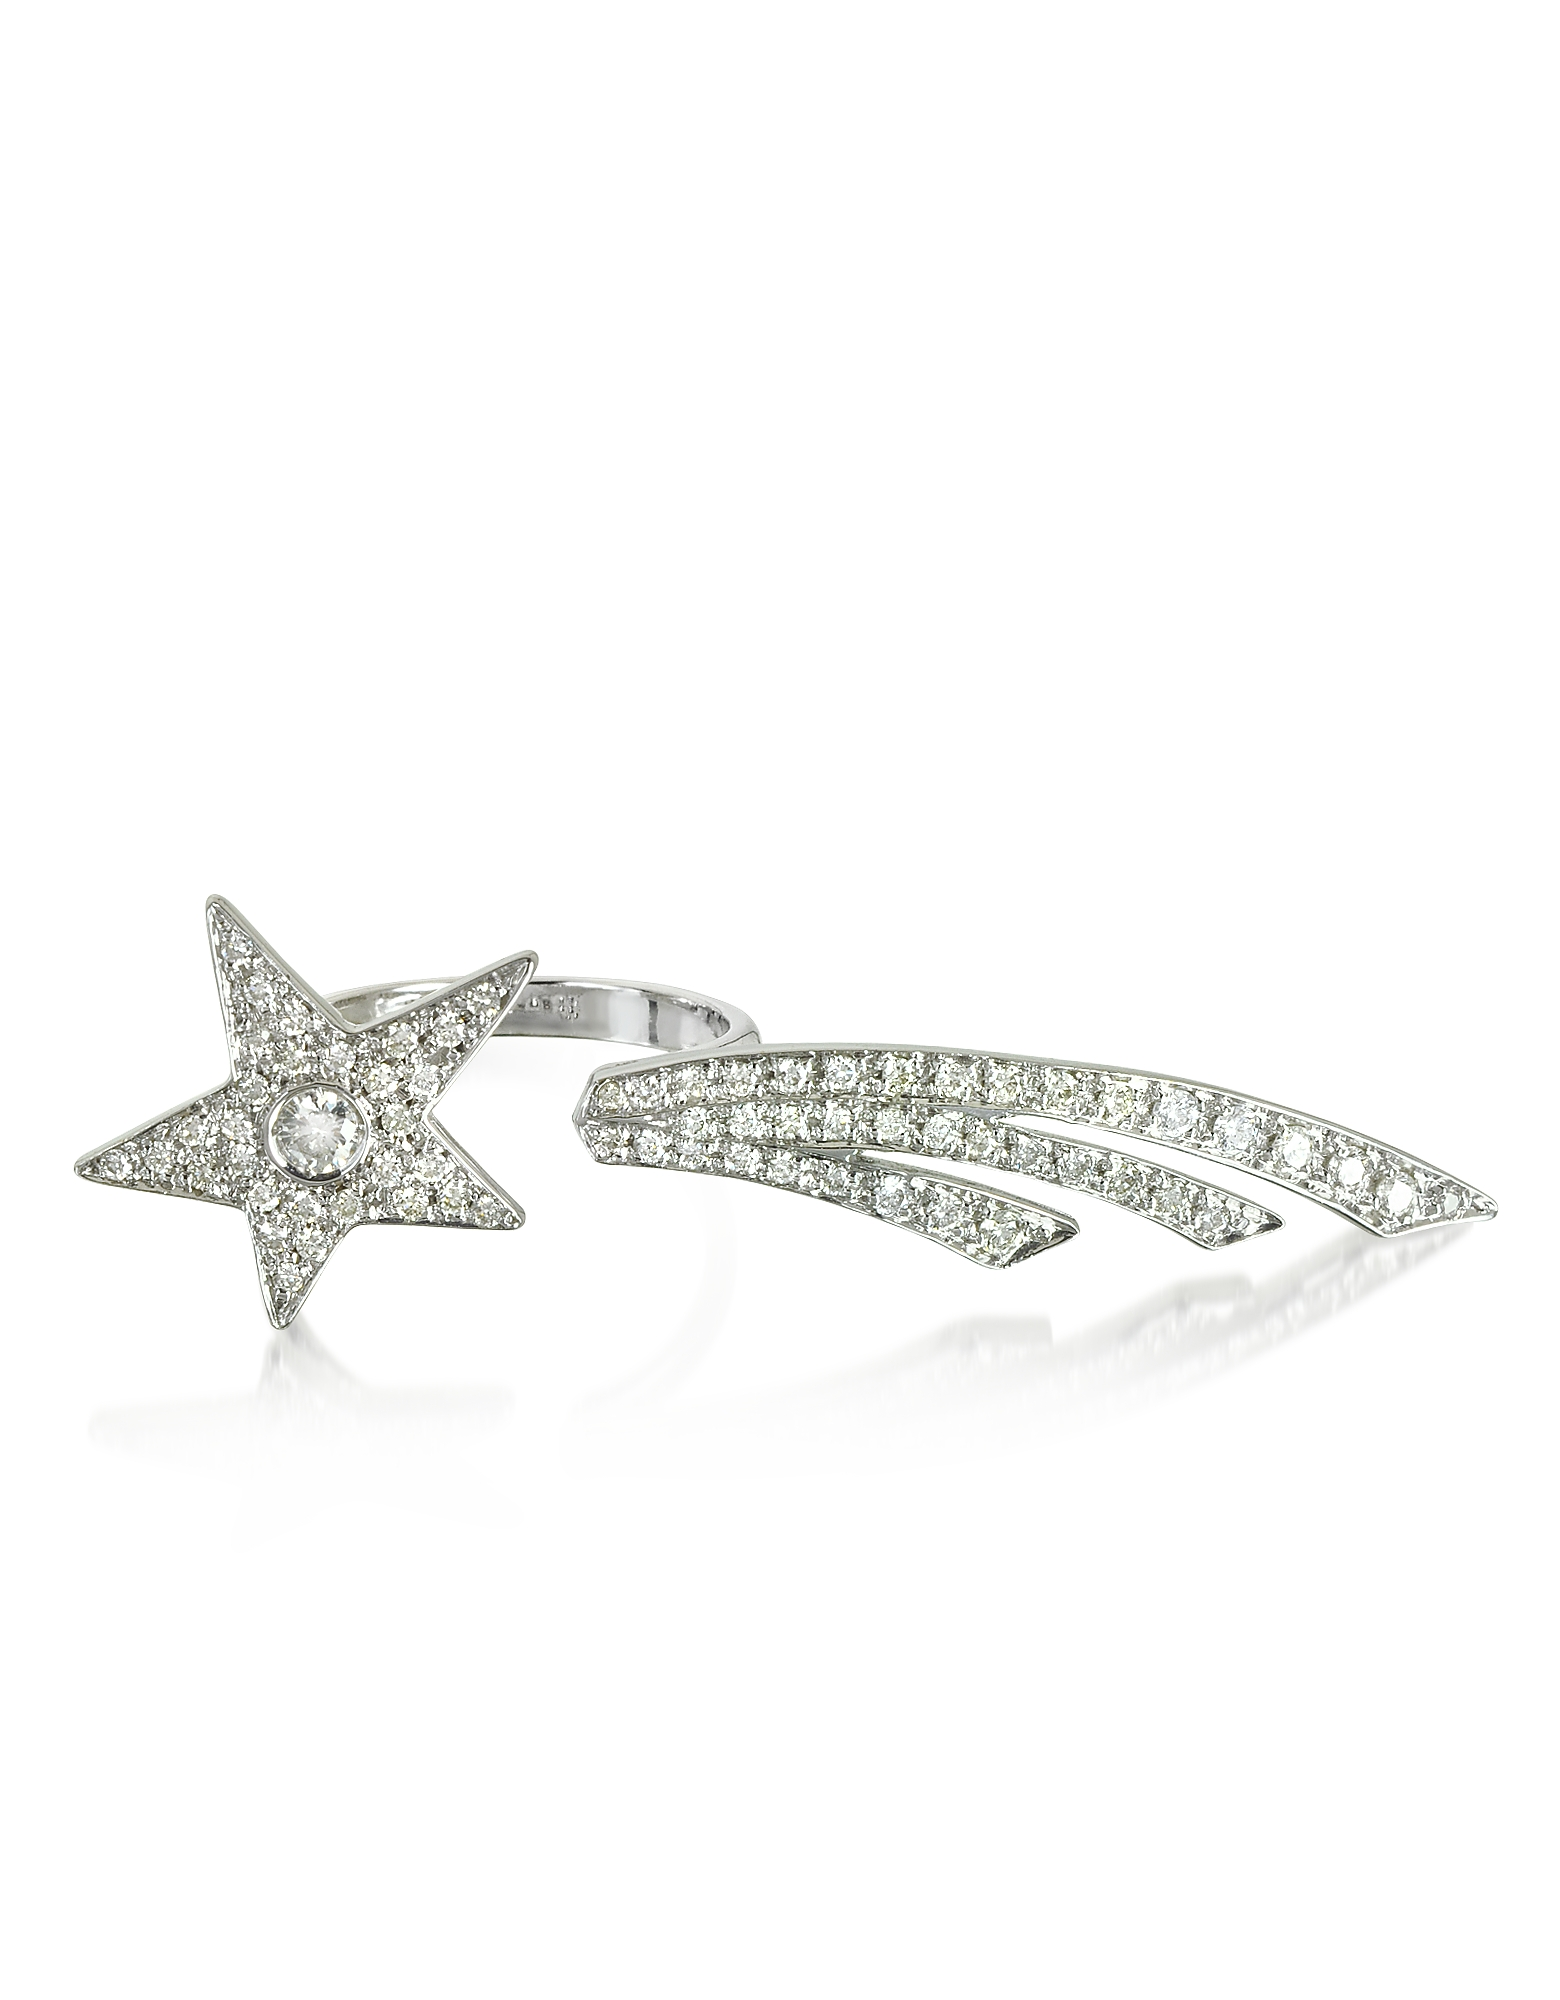 Bernard Delettrez Rings, Two Fingers Shooting Star 9K White Gold Ring w/Diamonds